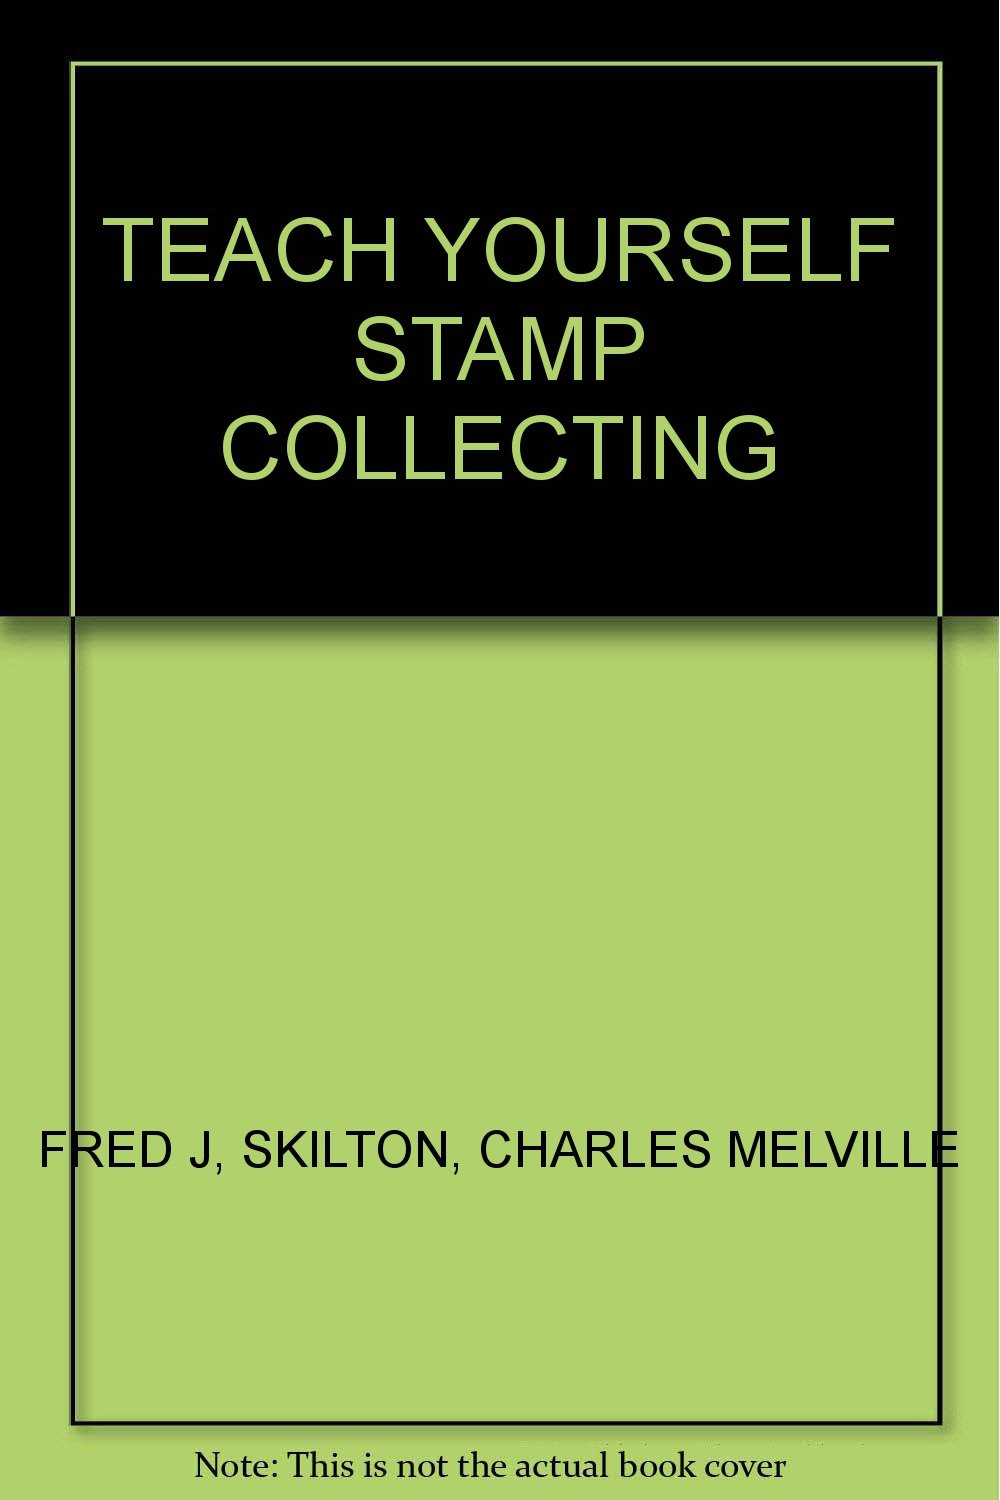 TEACH YOURSELF STAMP COLLECTING